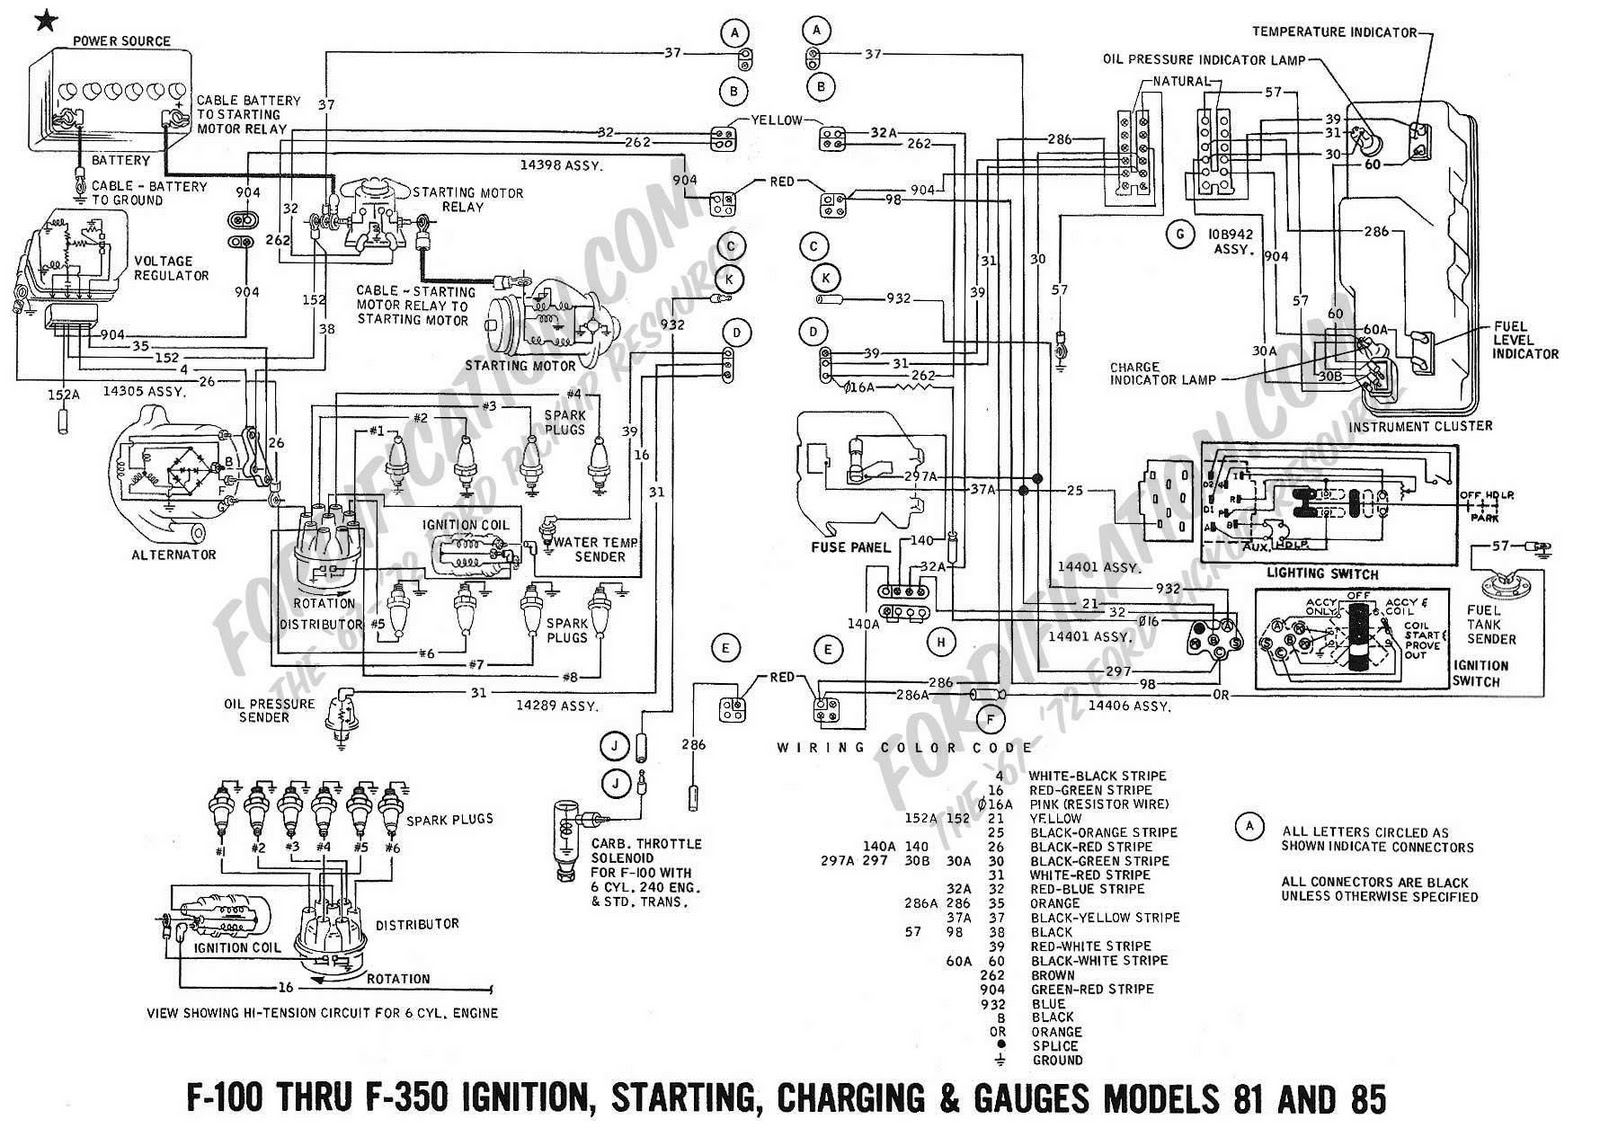 Wiring Diagram For 1966 Ford Truck | Wiring Diagram on 1963 falcon speedometer, 1963 falcon exhaust, 1963 falcon brakes, 1963 falcon wheels, 1963 falcon transmission, 1963 falcon battery, 1963 falcon frame, 1963 falcon steering, 1963 falcon ignition coil, 1963 falcon seats, 1963 falcon cylinder head, 1963 falcon suspension, 1963 falcon radio, 1963 falcon distributor, 1963 falcon fuel pump, 1963 falcon brochure, 1963 falcon ford, 1963 falcon specifications, 1963 falcon engine, 1963 falcon radiator,